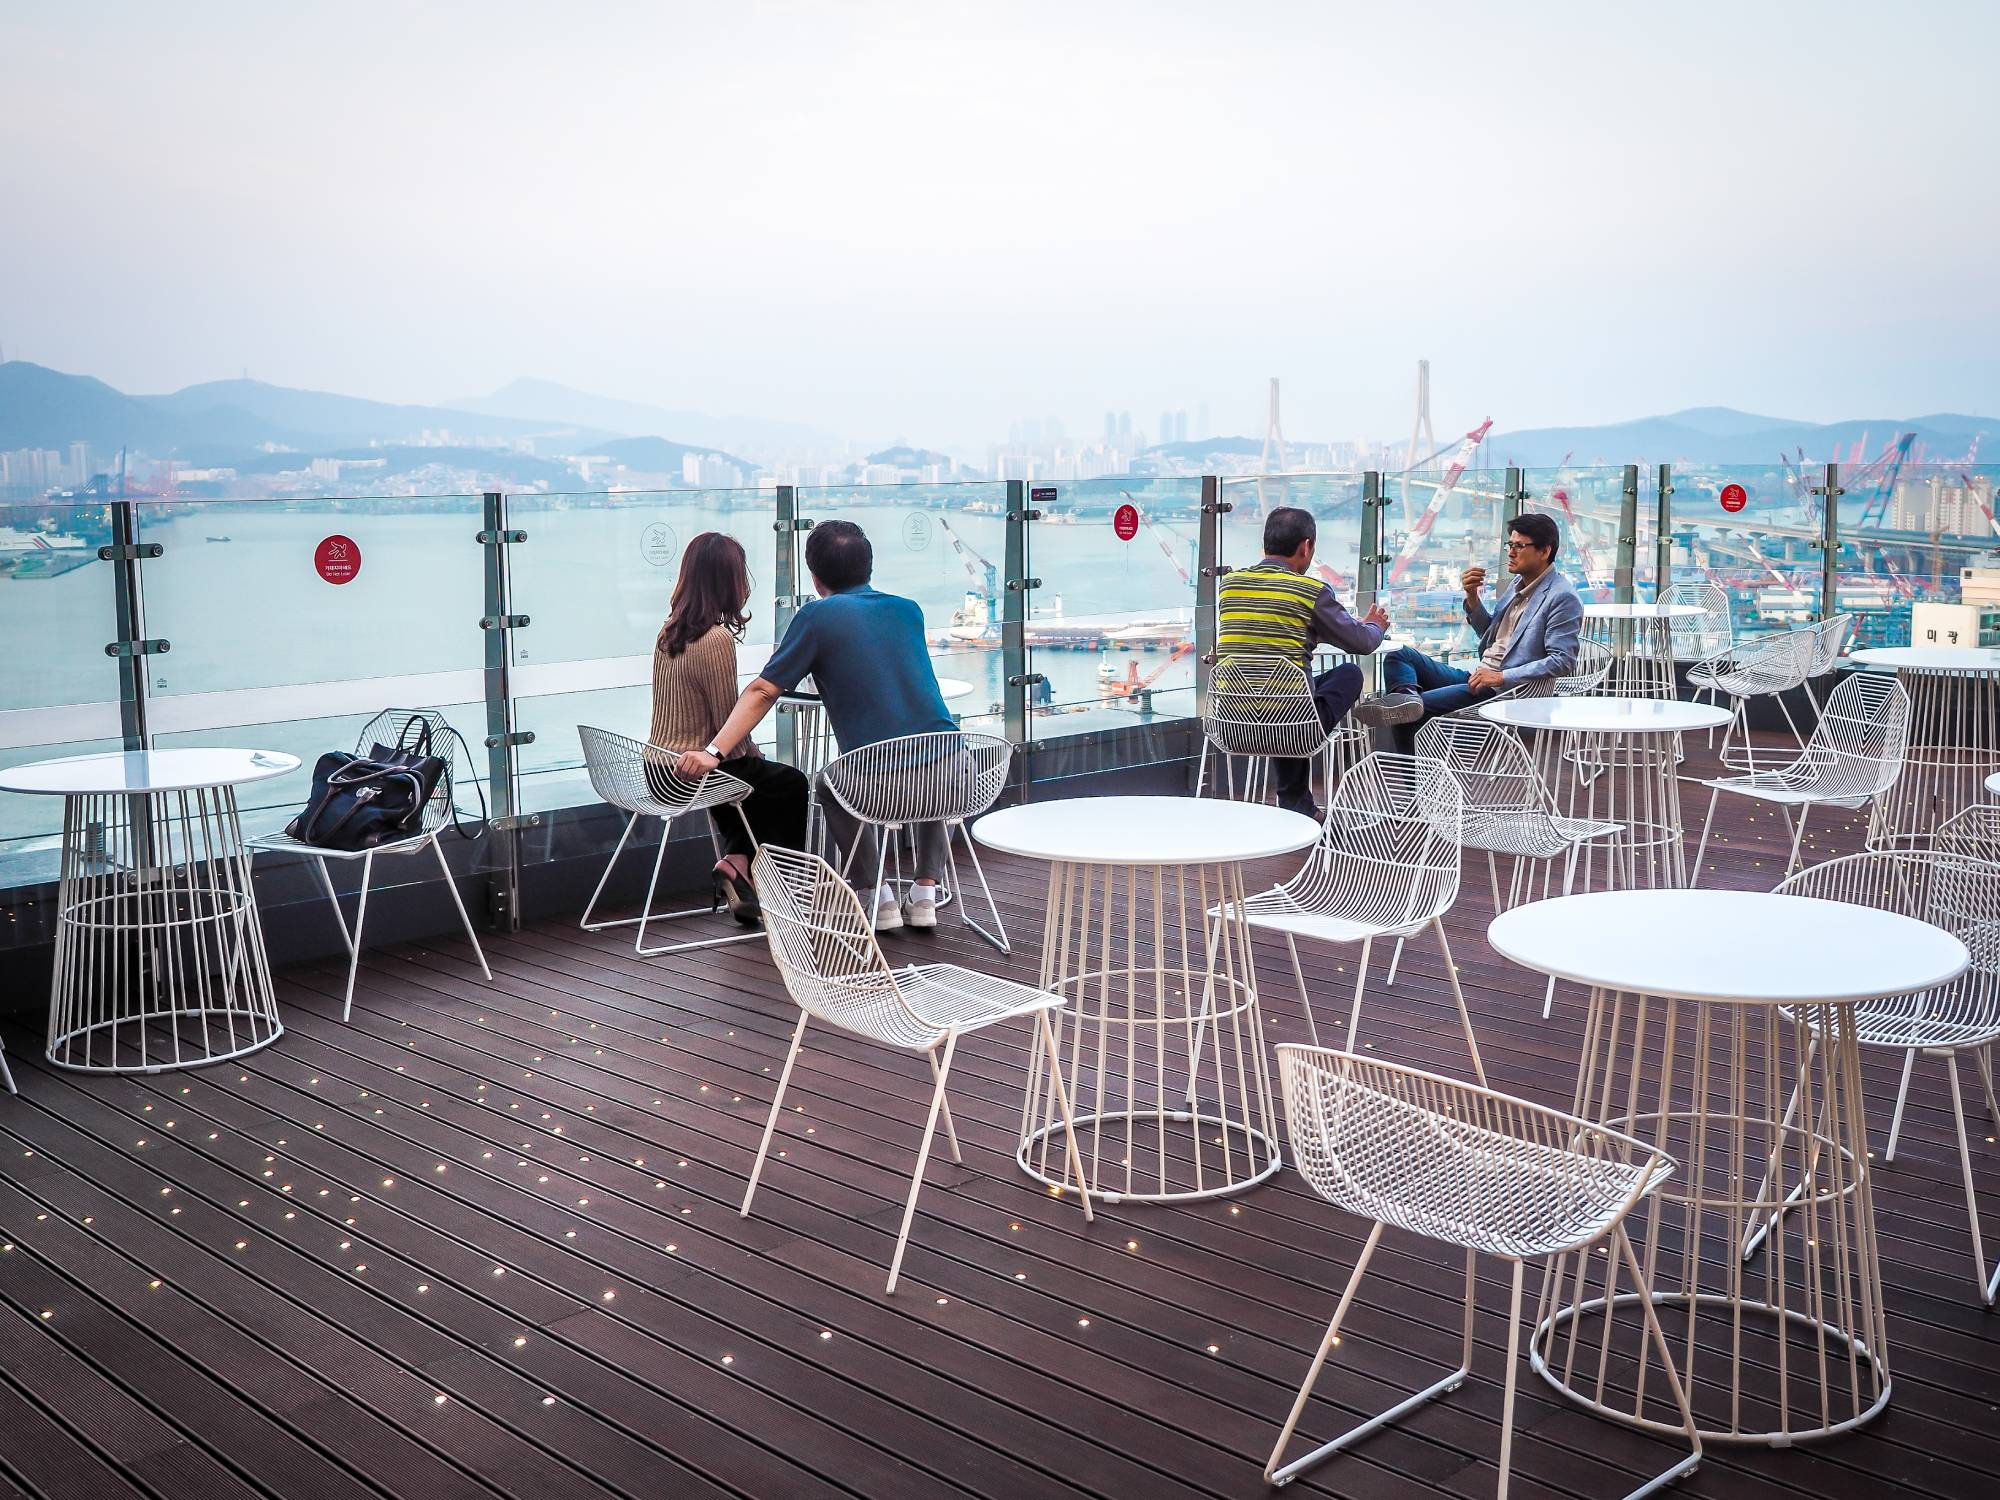 Outdoor patio of Maxim's de Paris cafe with view of Busan Harbor